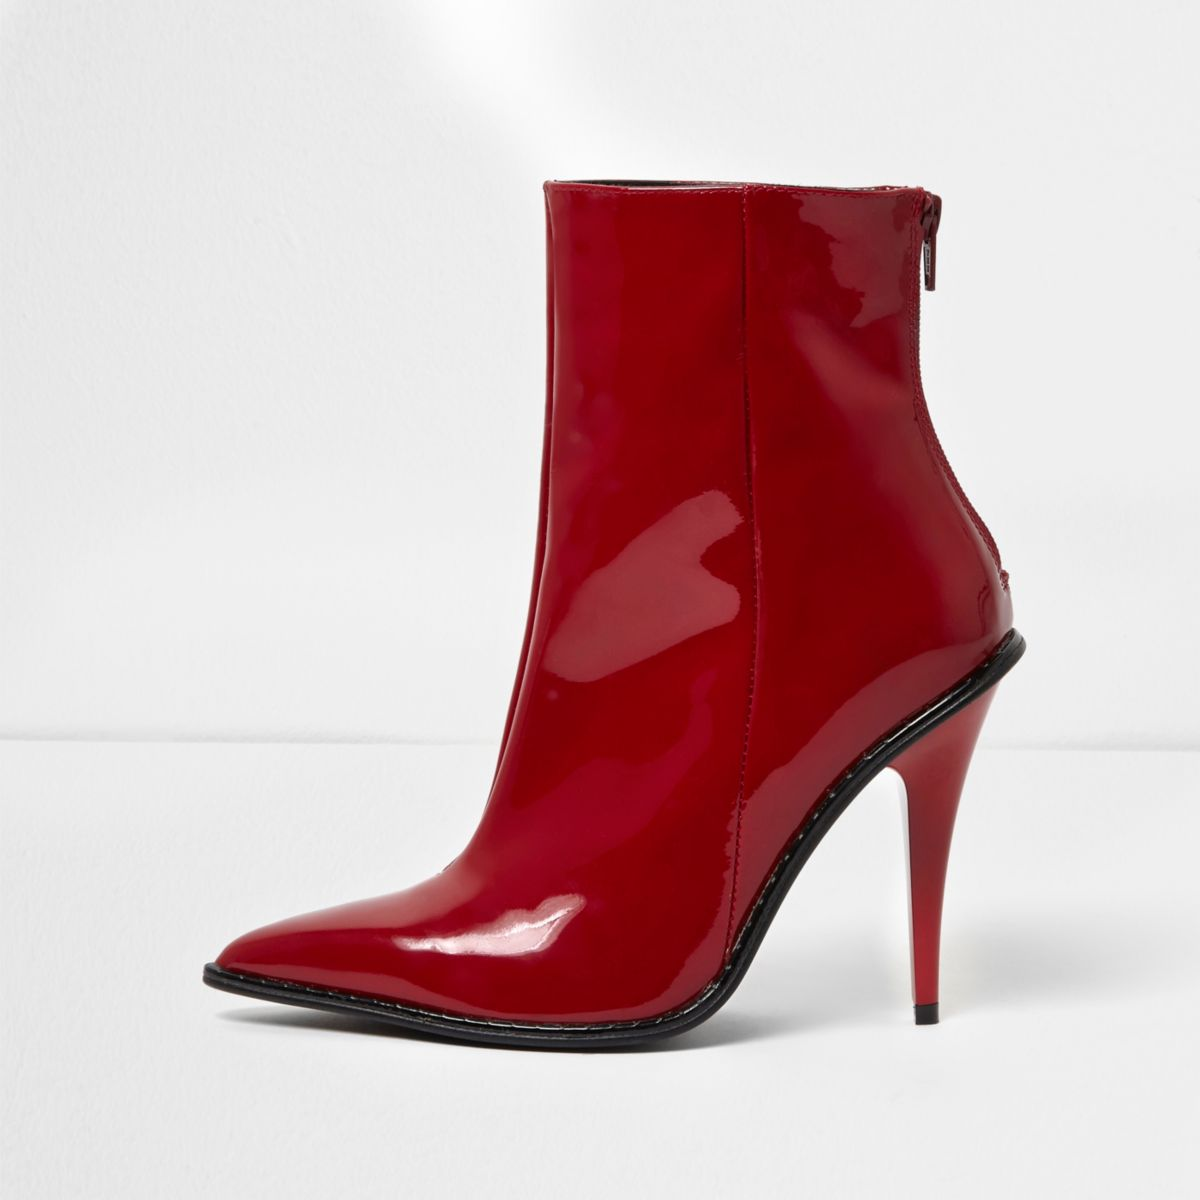 The front zipper on these Miss Selfridge Patent Ankle Boot ($88) make them feel extra cool.